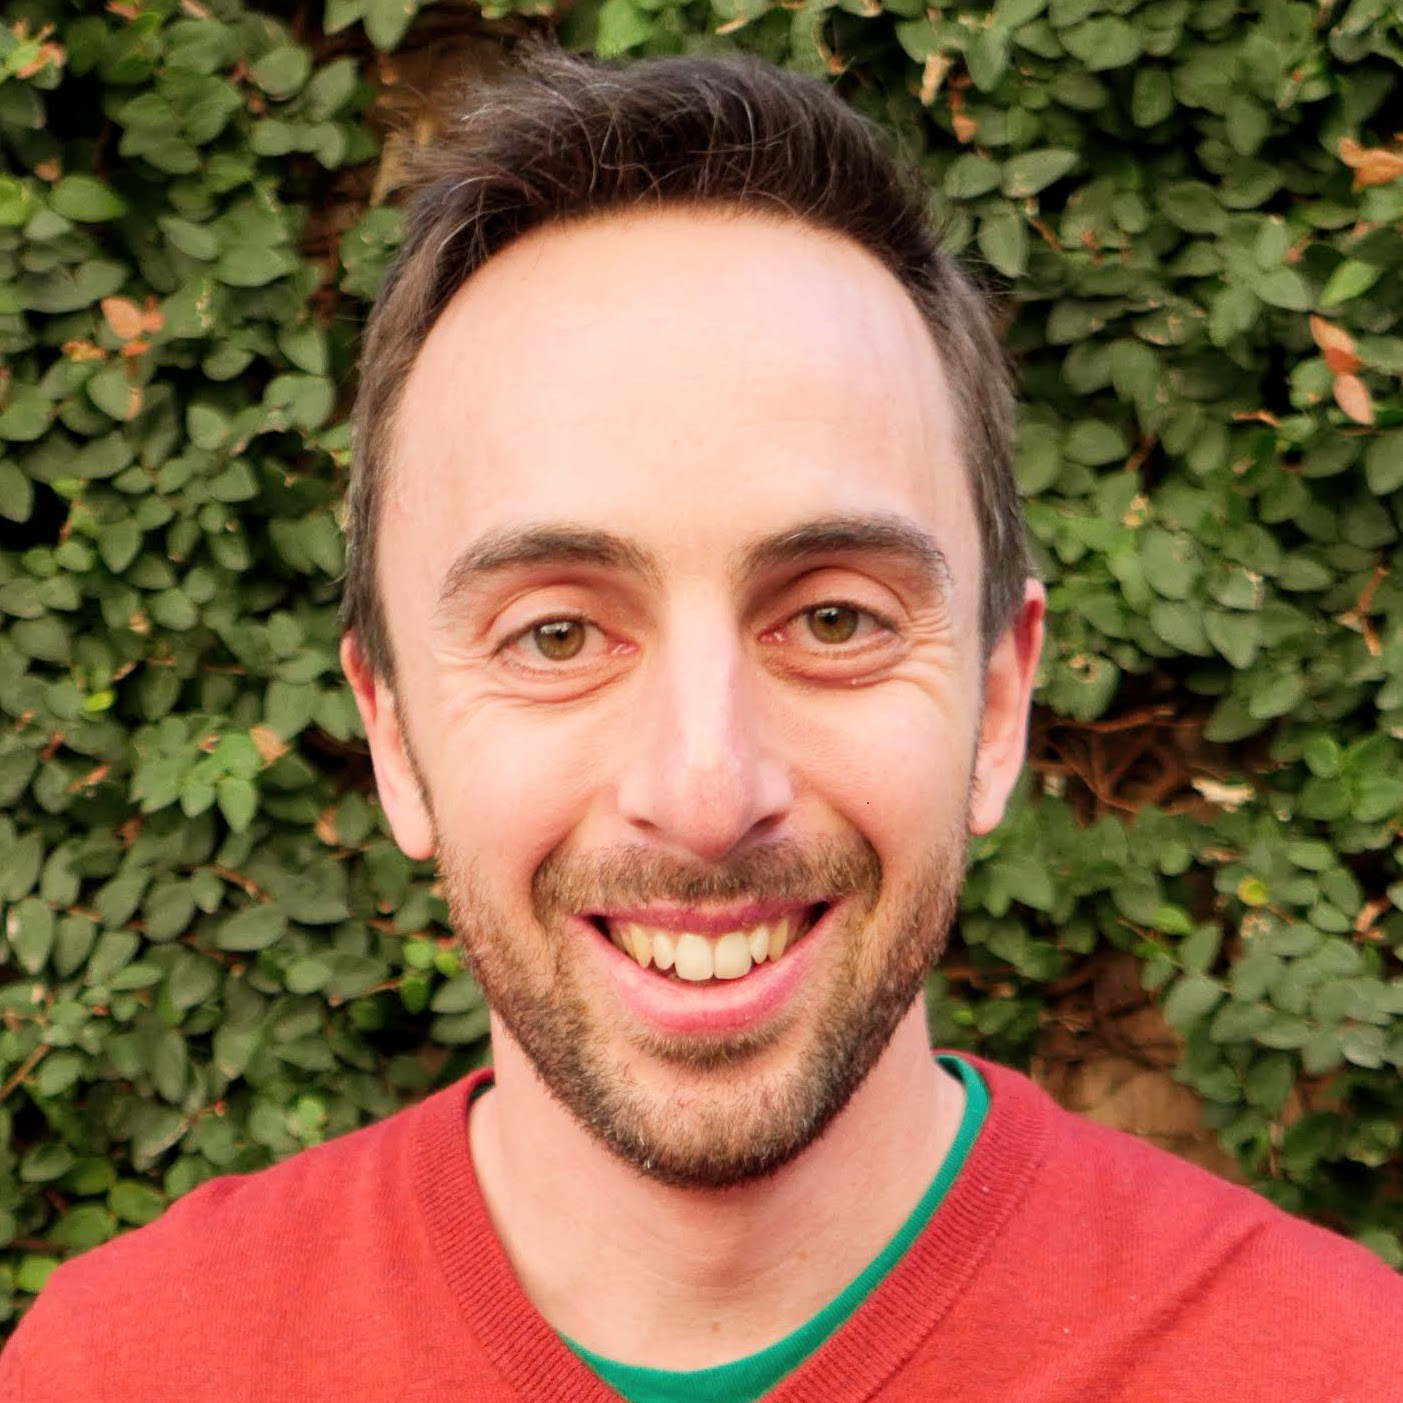 Andreas KnechtCo-founder - Andreas spent 10 years with Atlassian where he lived and breathed Jira. When not writing code or having his bike stolen, he enjoys rock climbing around Australia.